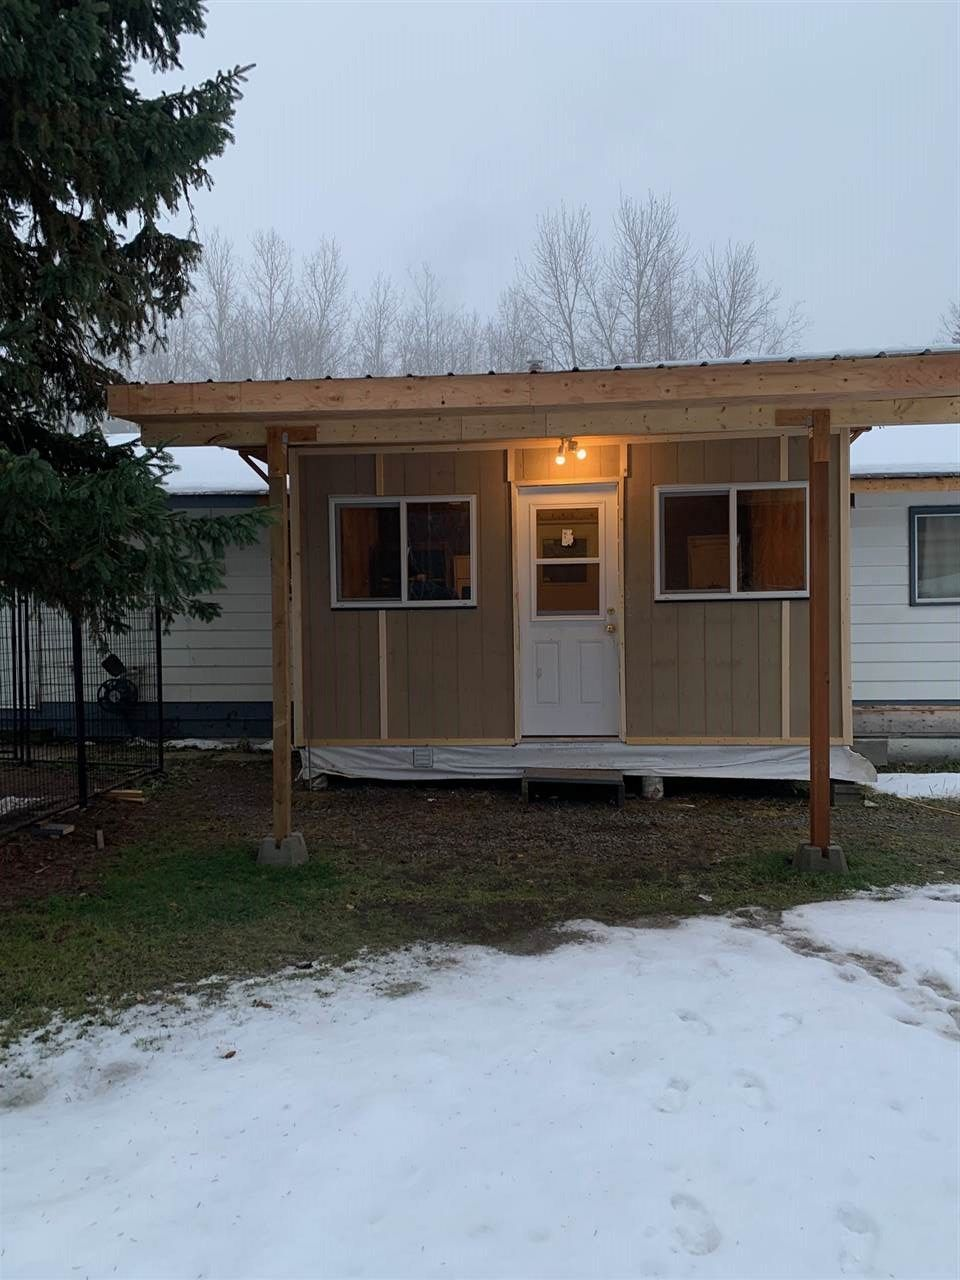 Photo 15: Photos: 4850 SALMON VALLEY Road in Prince George: Salmon Valley House for sale (PG Rural North (Zone 76))  : MLS®# R2509615